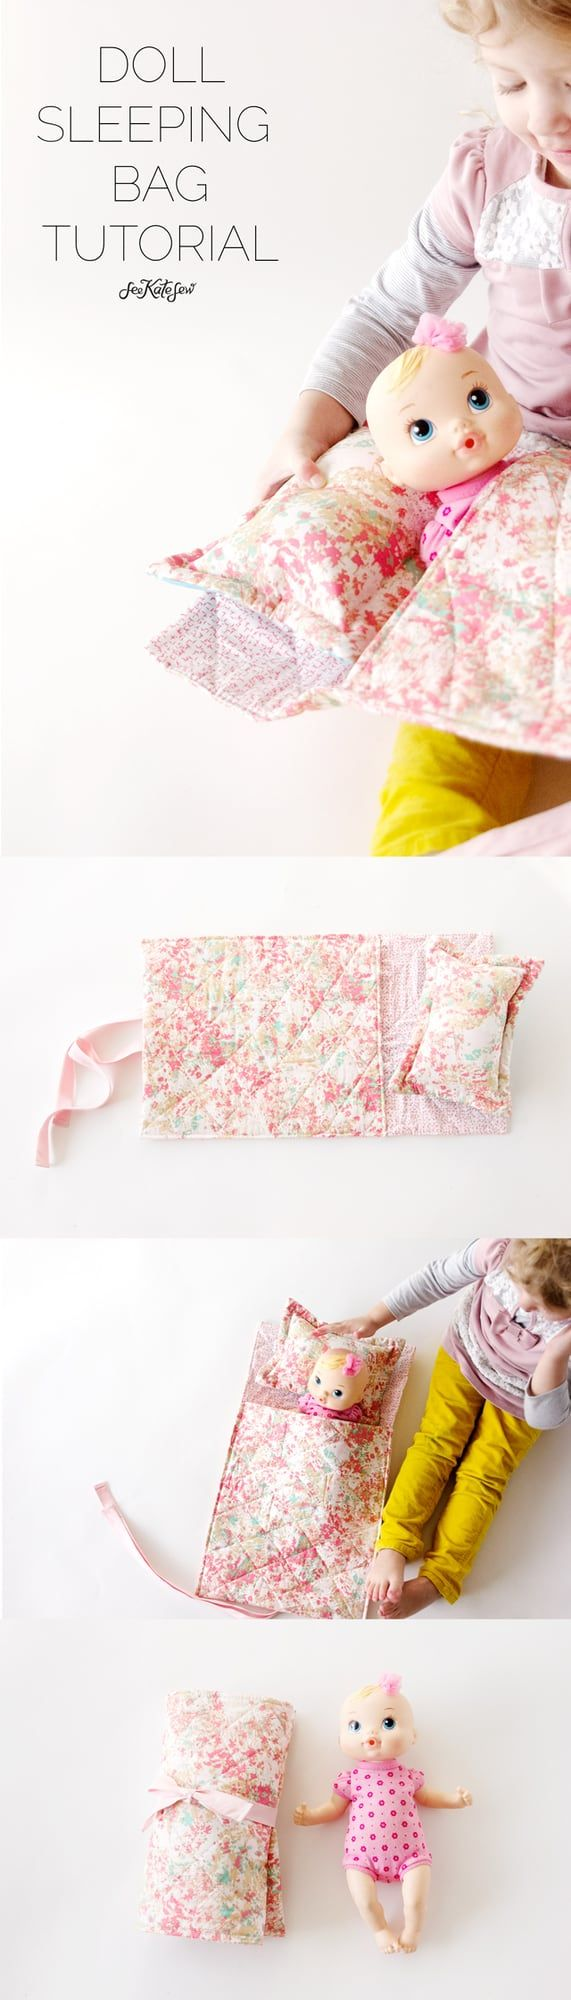 Or sleeping bags clothes pegs optional fairy lights optional - For More Handmade Gift Ideas Check Out My Buy Diy Series And This Could Totally Work Buy A Doll And Diy A Sleeping Bag